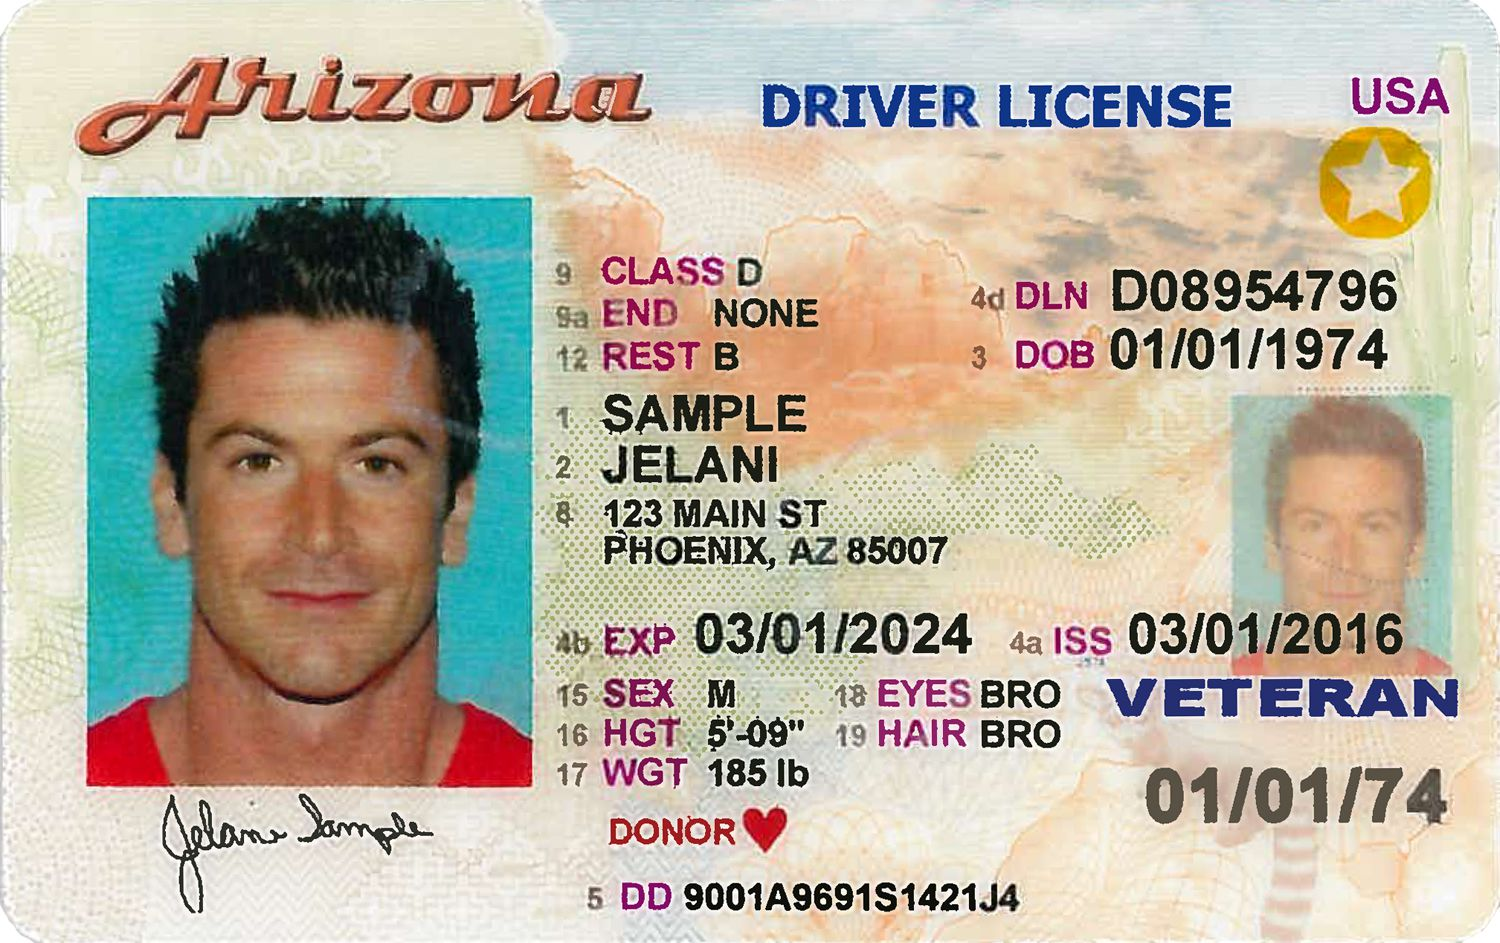 What does the arizona driver license look like arizona driver license travel id buycottarizona